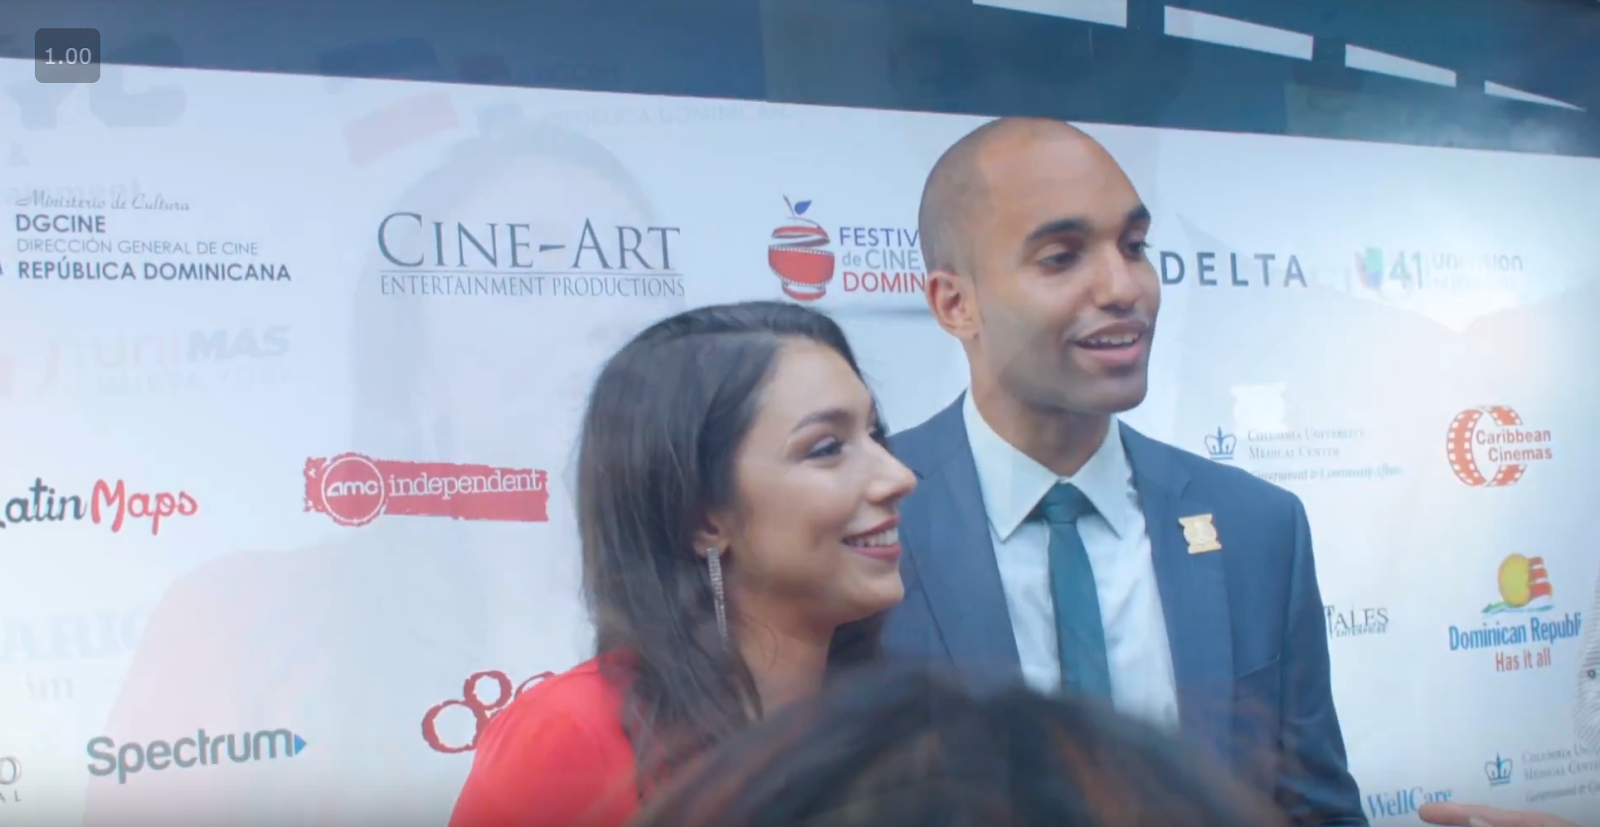 BronxNet covers the Dominican Film Festival Opening Night